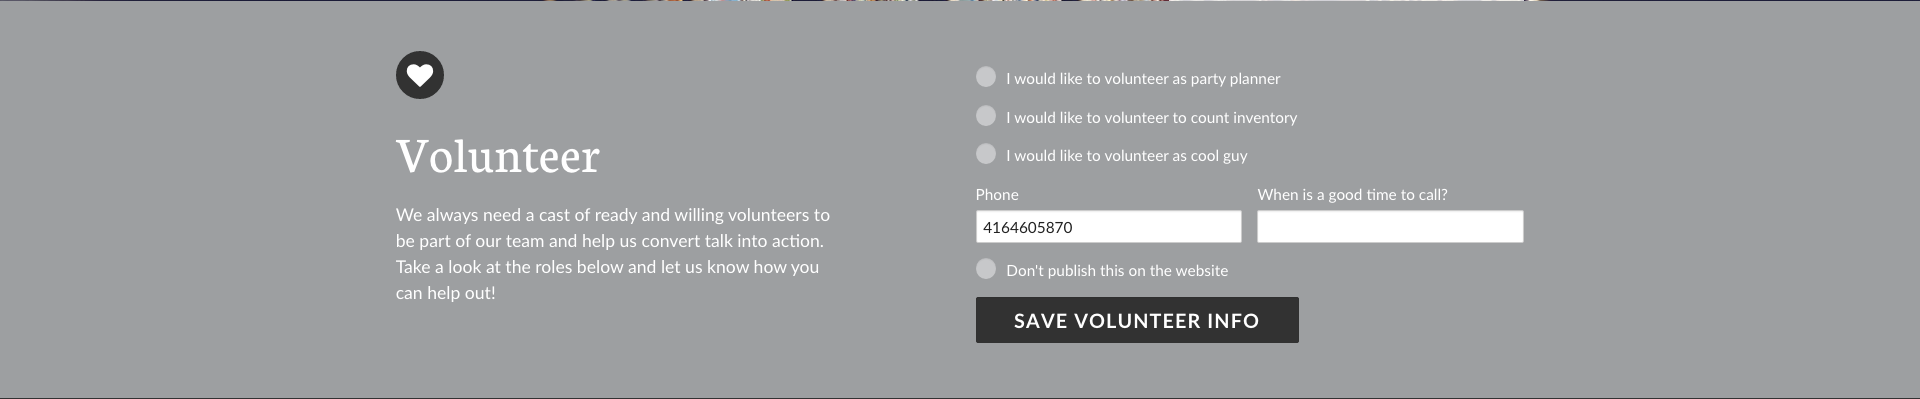 Volunteer_Signup_Desktop.png